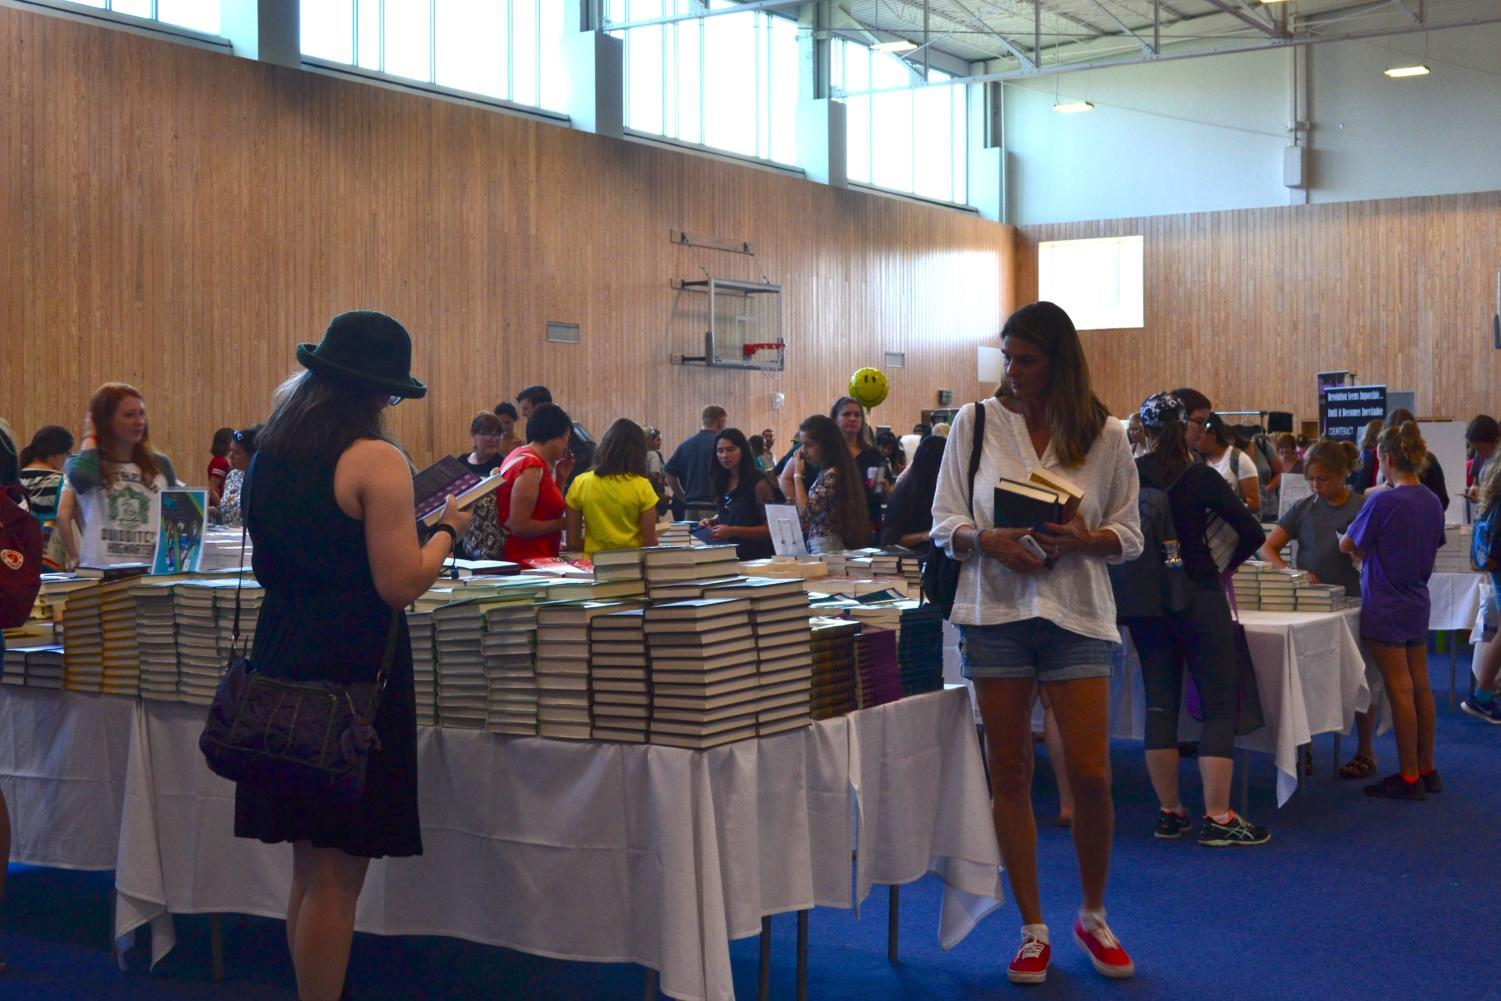 Texas Teen Book Festival attendees browse for books before the festival starts on Oct. 7 at St. Edward's University. Books were sold throughout the day by BookPeople so festival attendees could have them signed and personalized by their favorite authors.